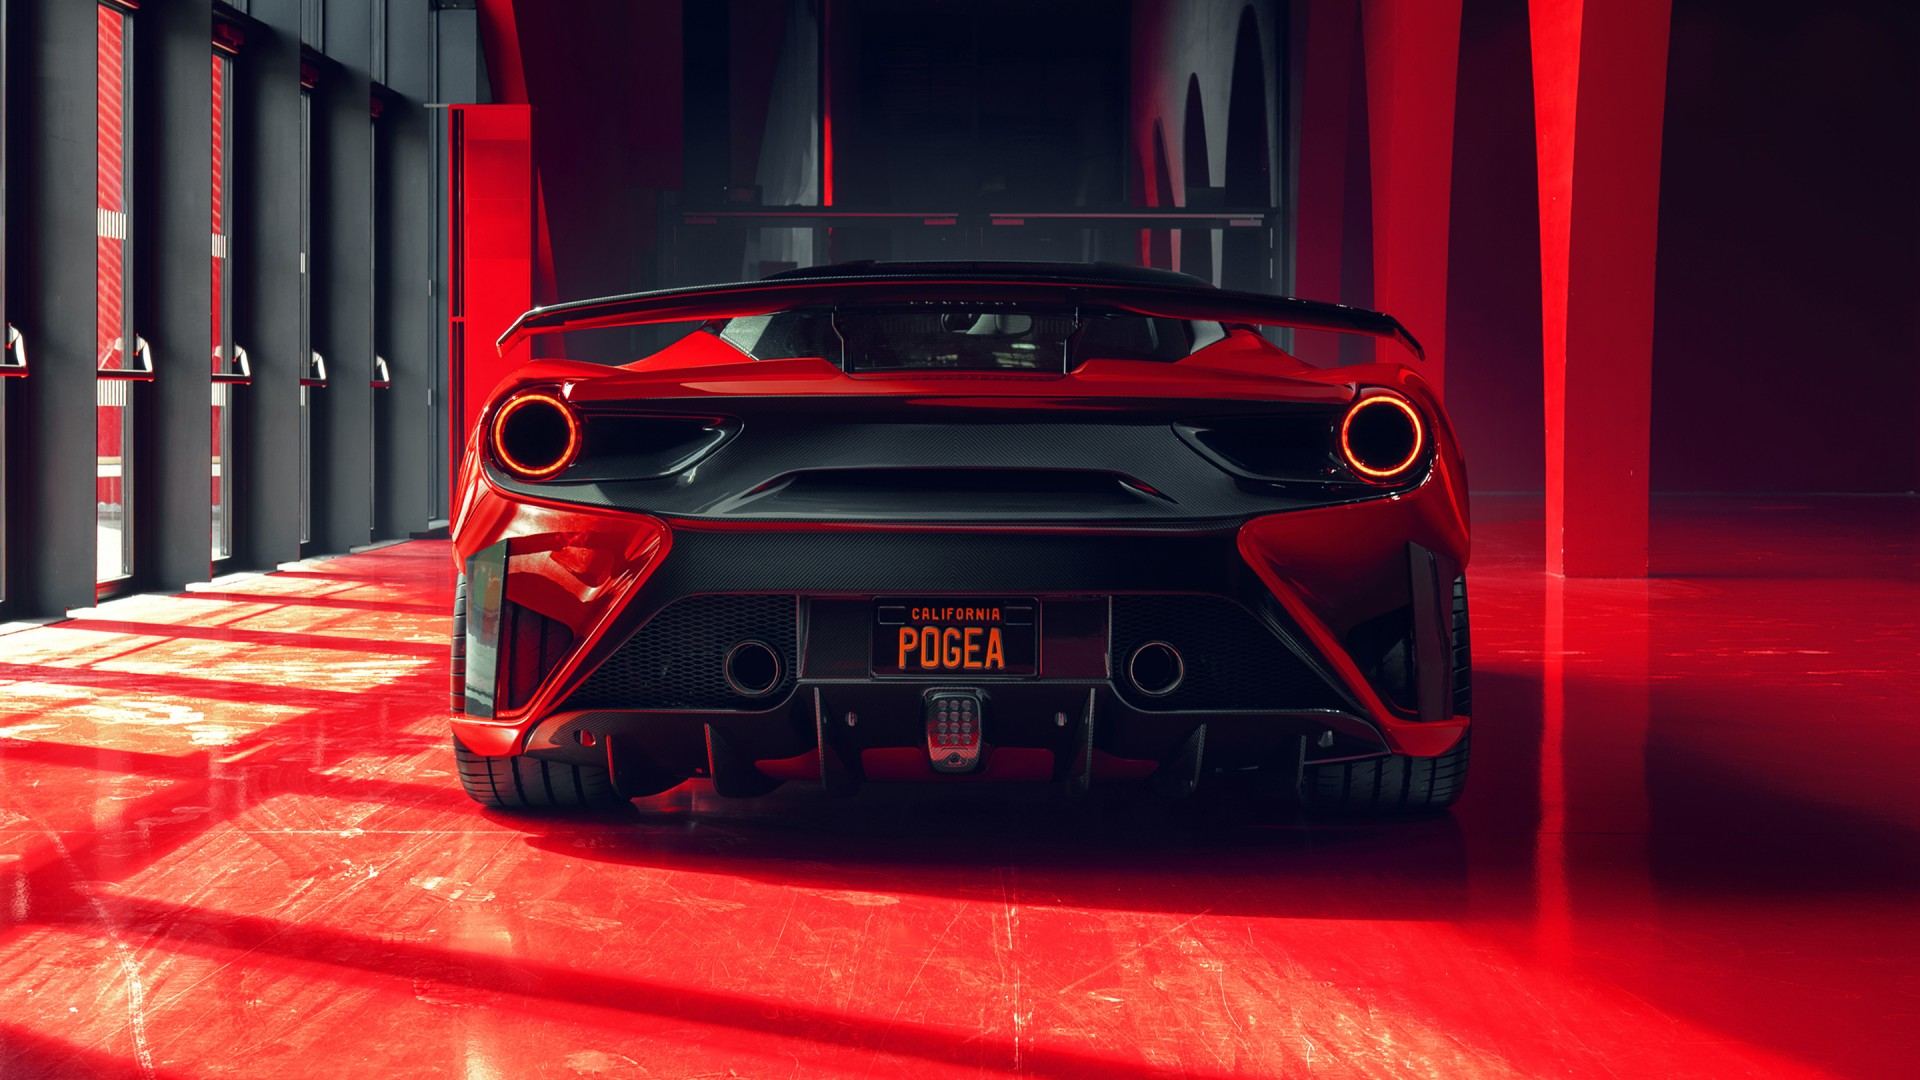 Ipad Mini Wallpaper Hd 2018 Pogea Racing Fplus Corsa Ferrari 488 Gtb 2 Wallpaper